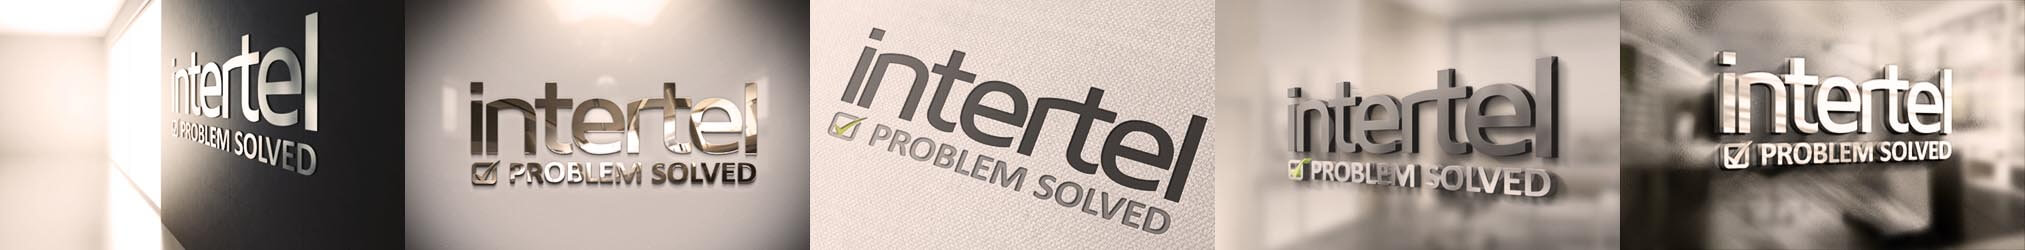 intertel banner